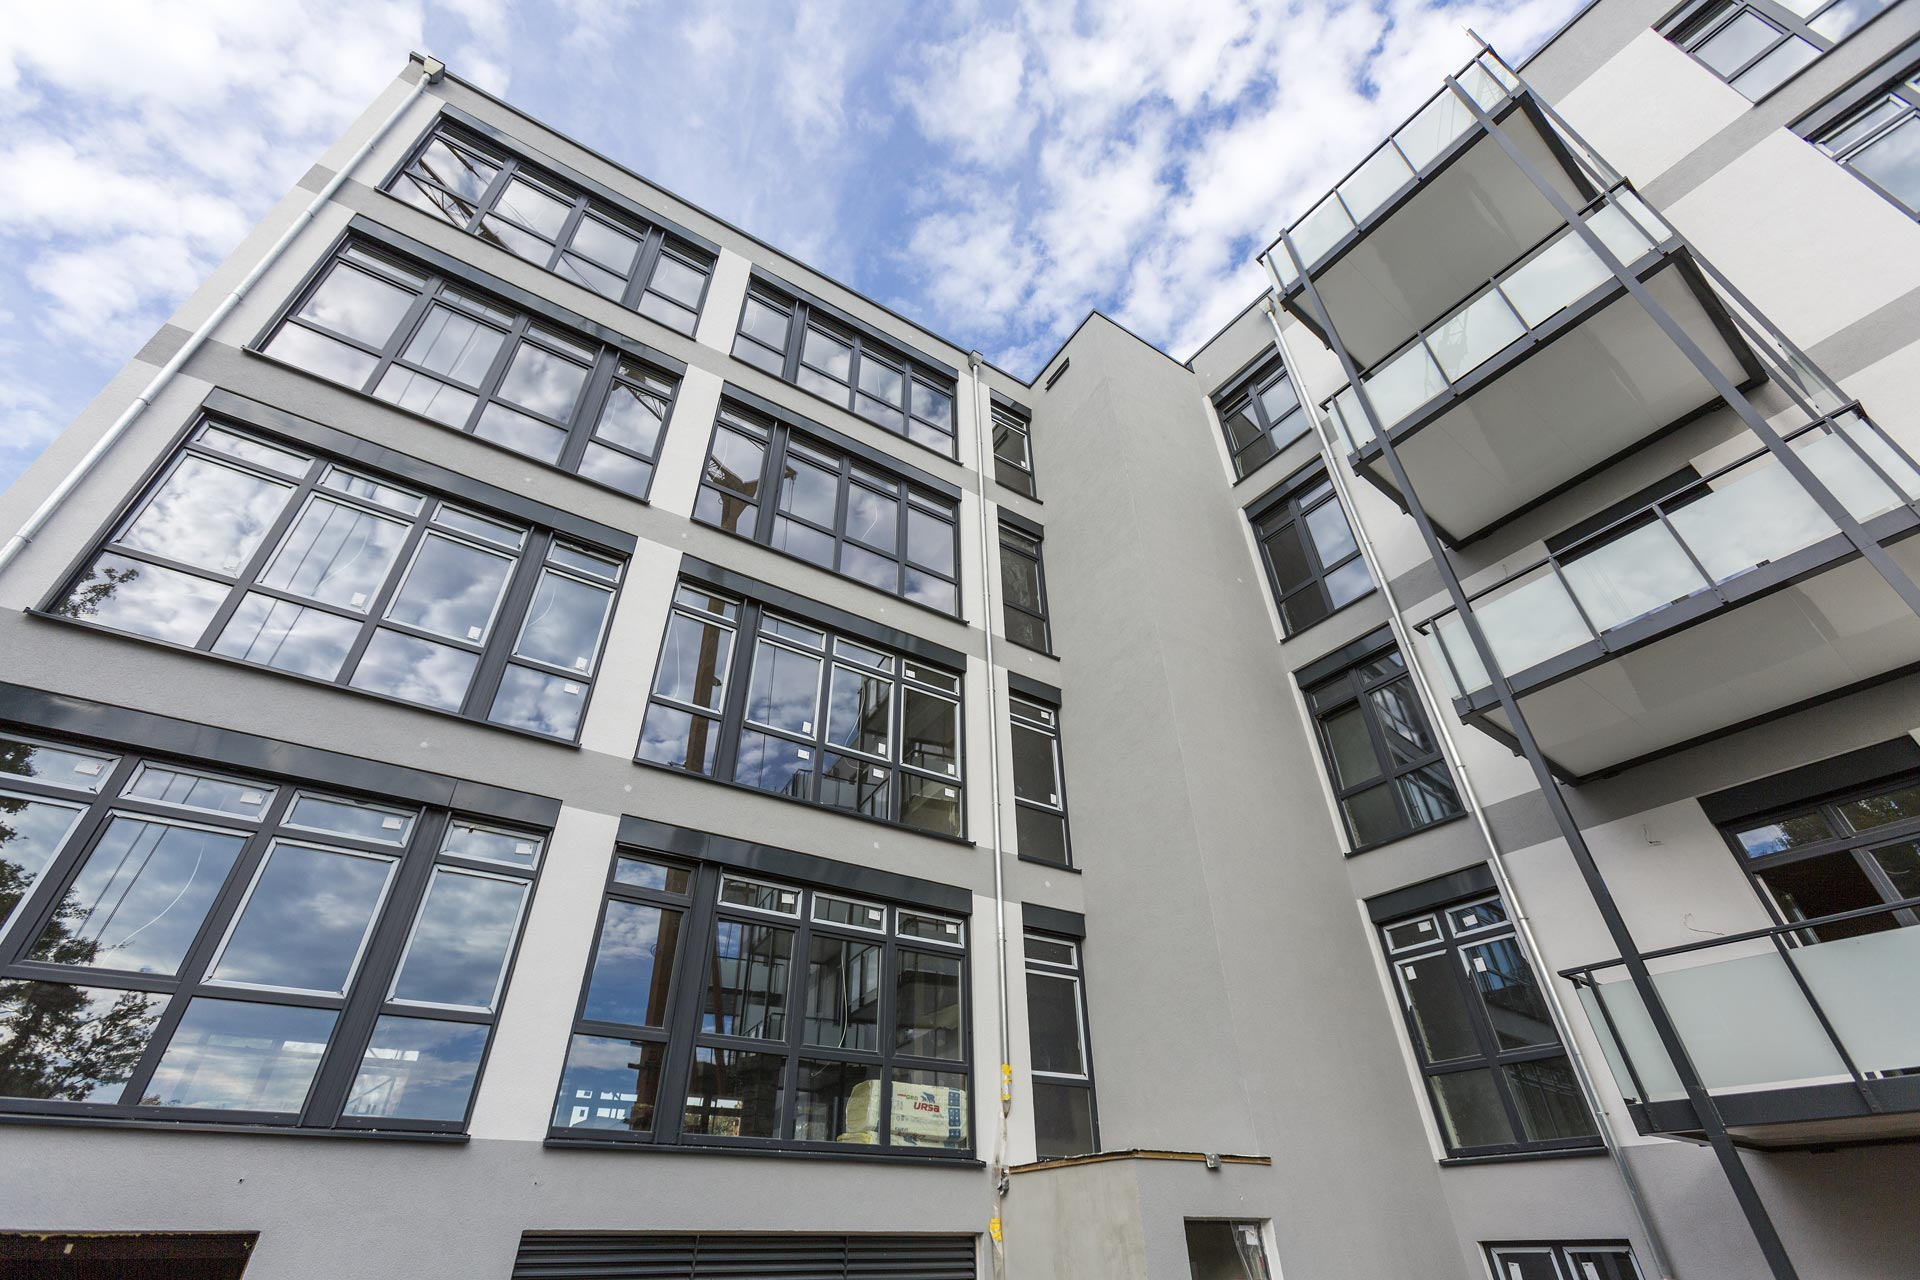 Immobilie mit 20 Lofts in Krefeld